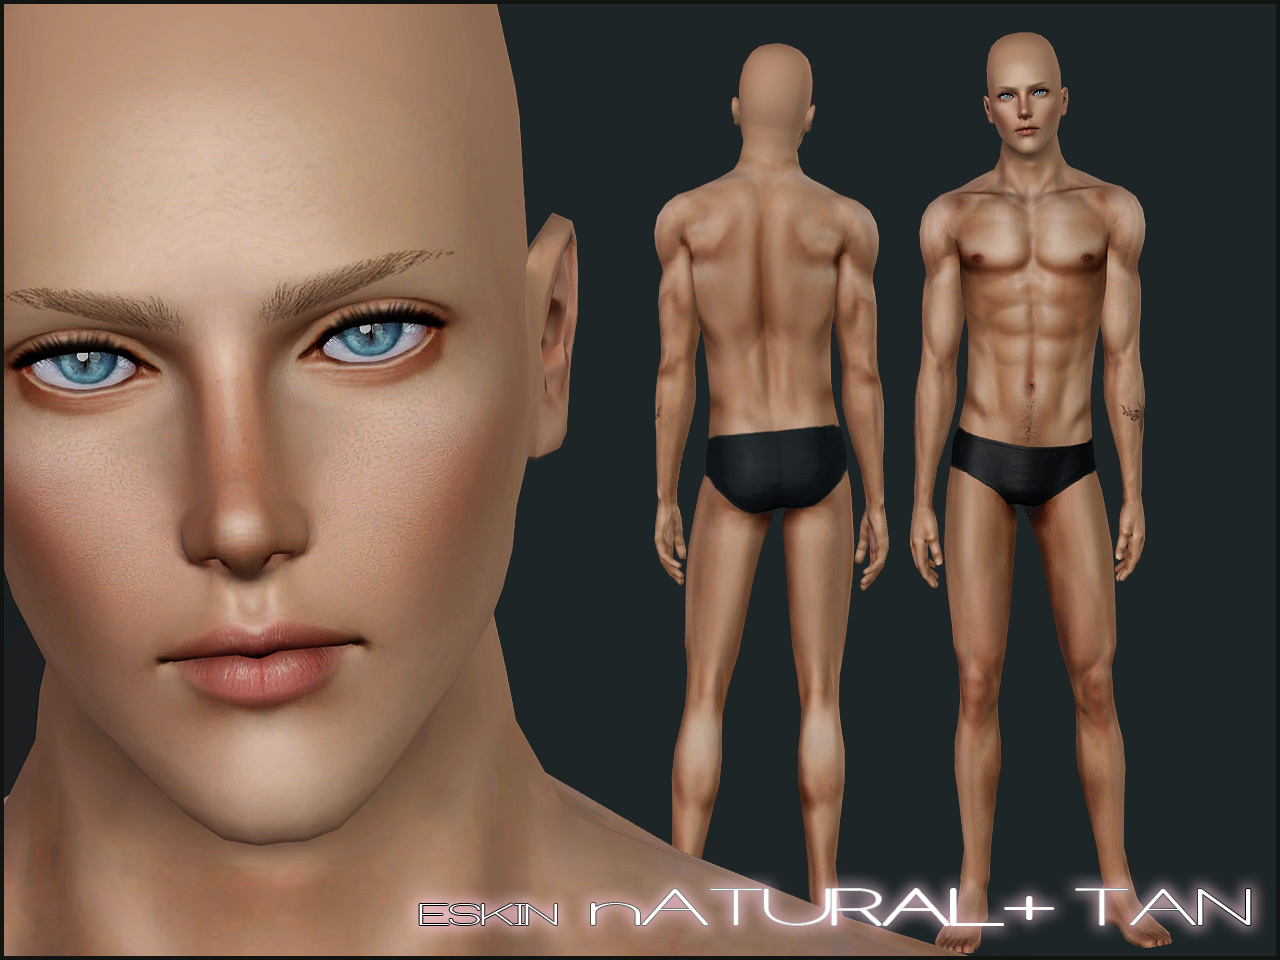 The sims 2 naked male skins download nude images